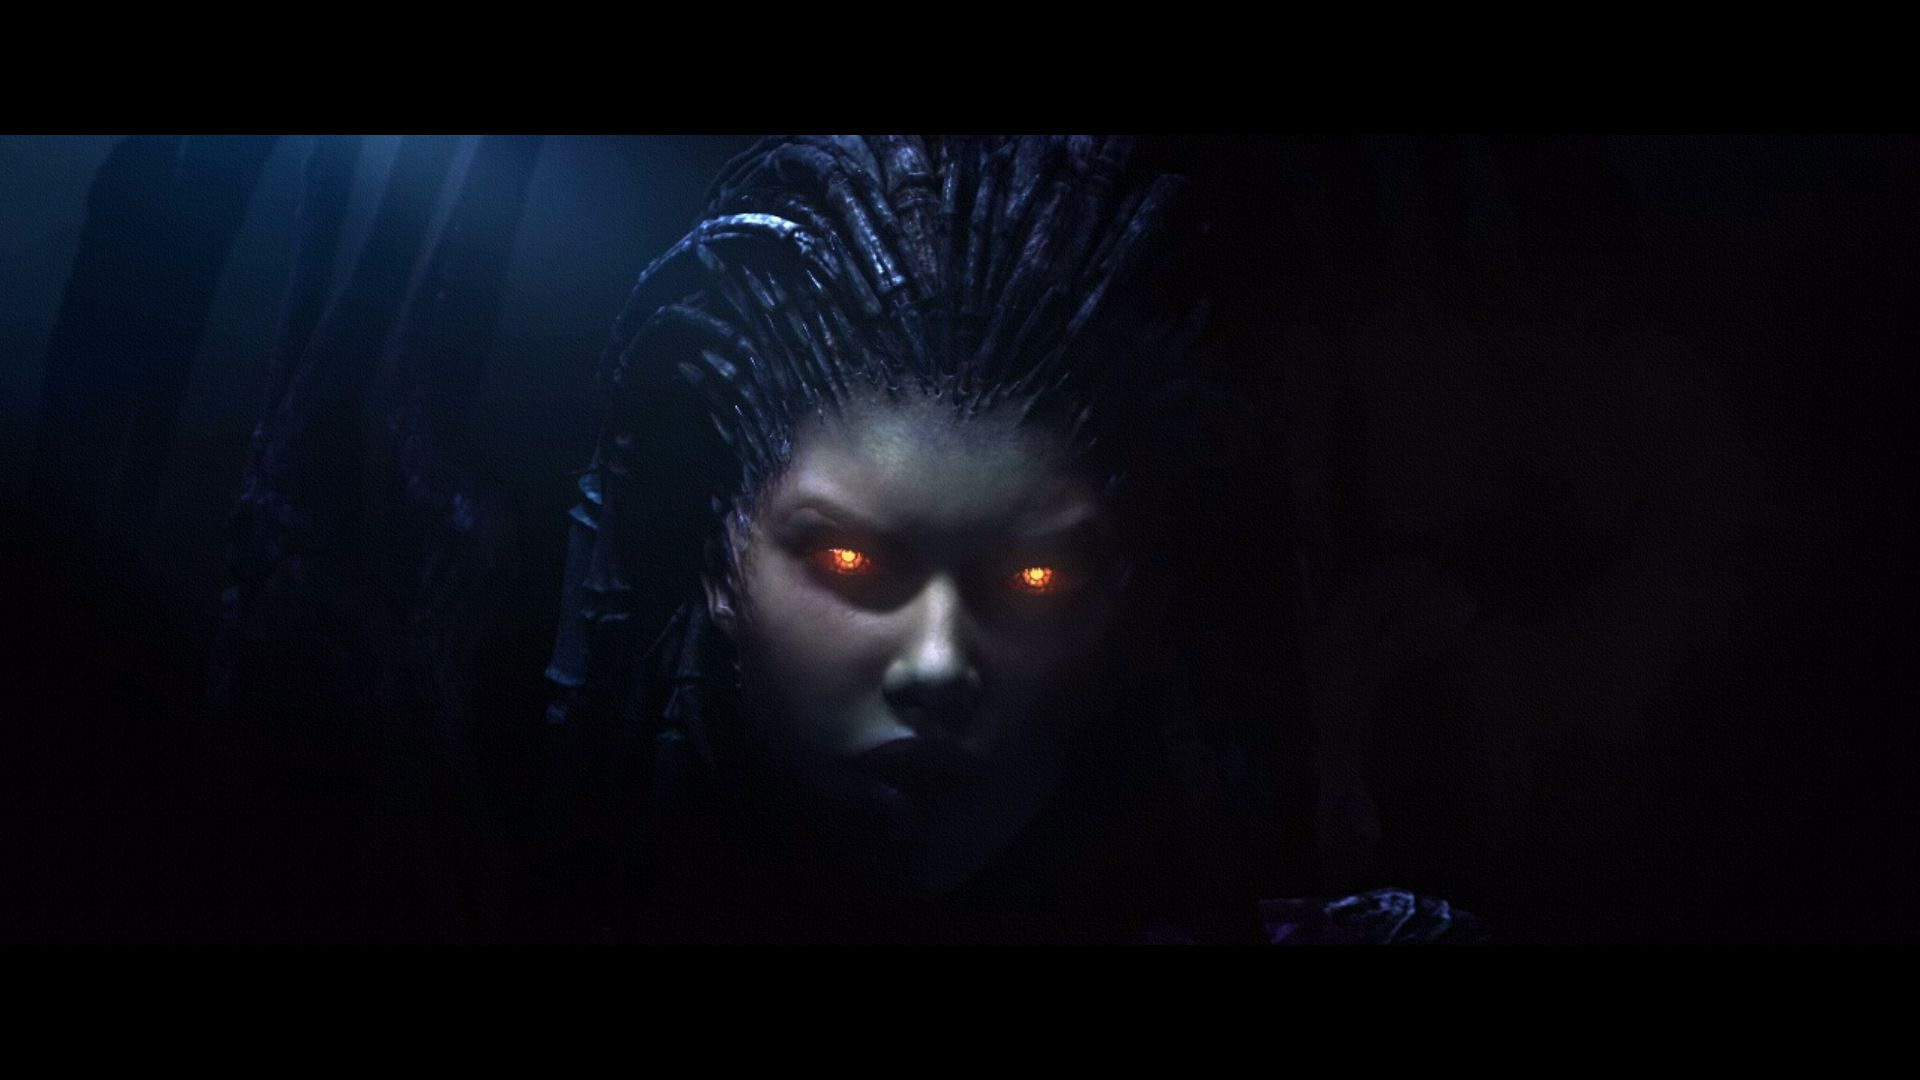 High Def Gaming Backgrounds For Your Computer Desktop Performance Psu Starcraft Wallpaper Gaming Wallpapers